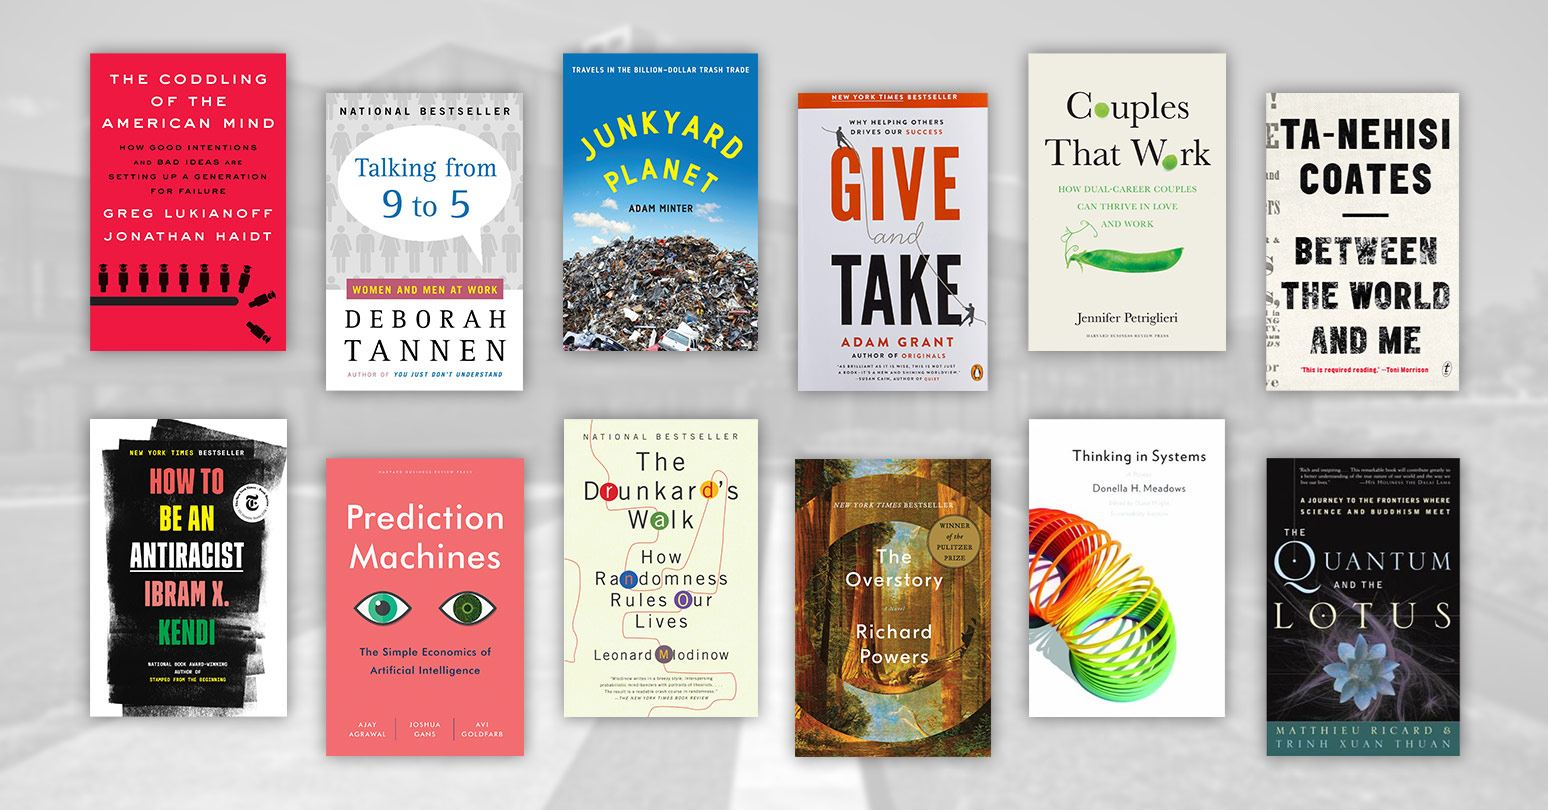 Summer reads: Top book picks from Ivey faculty